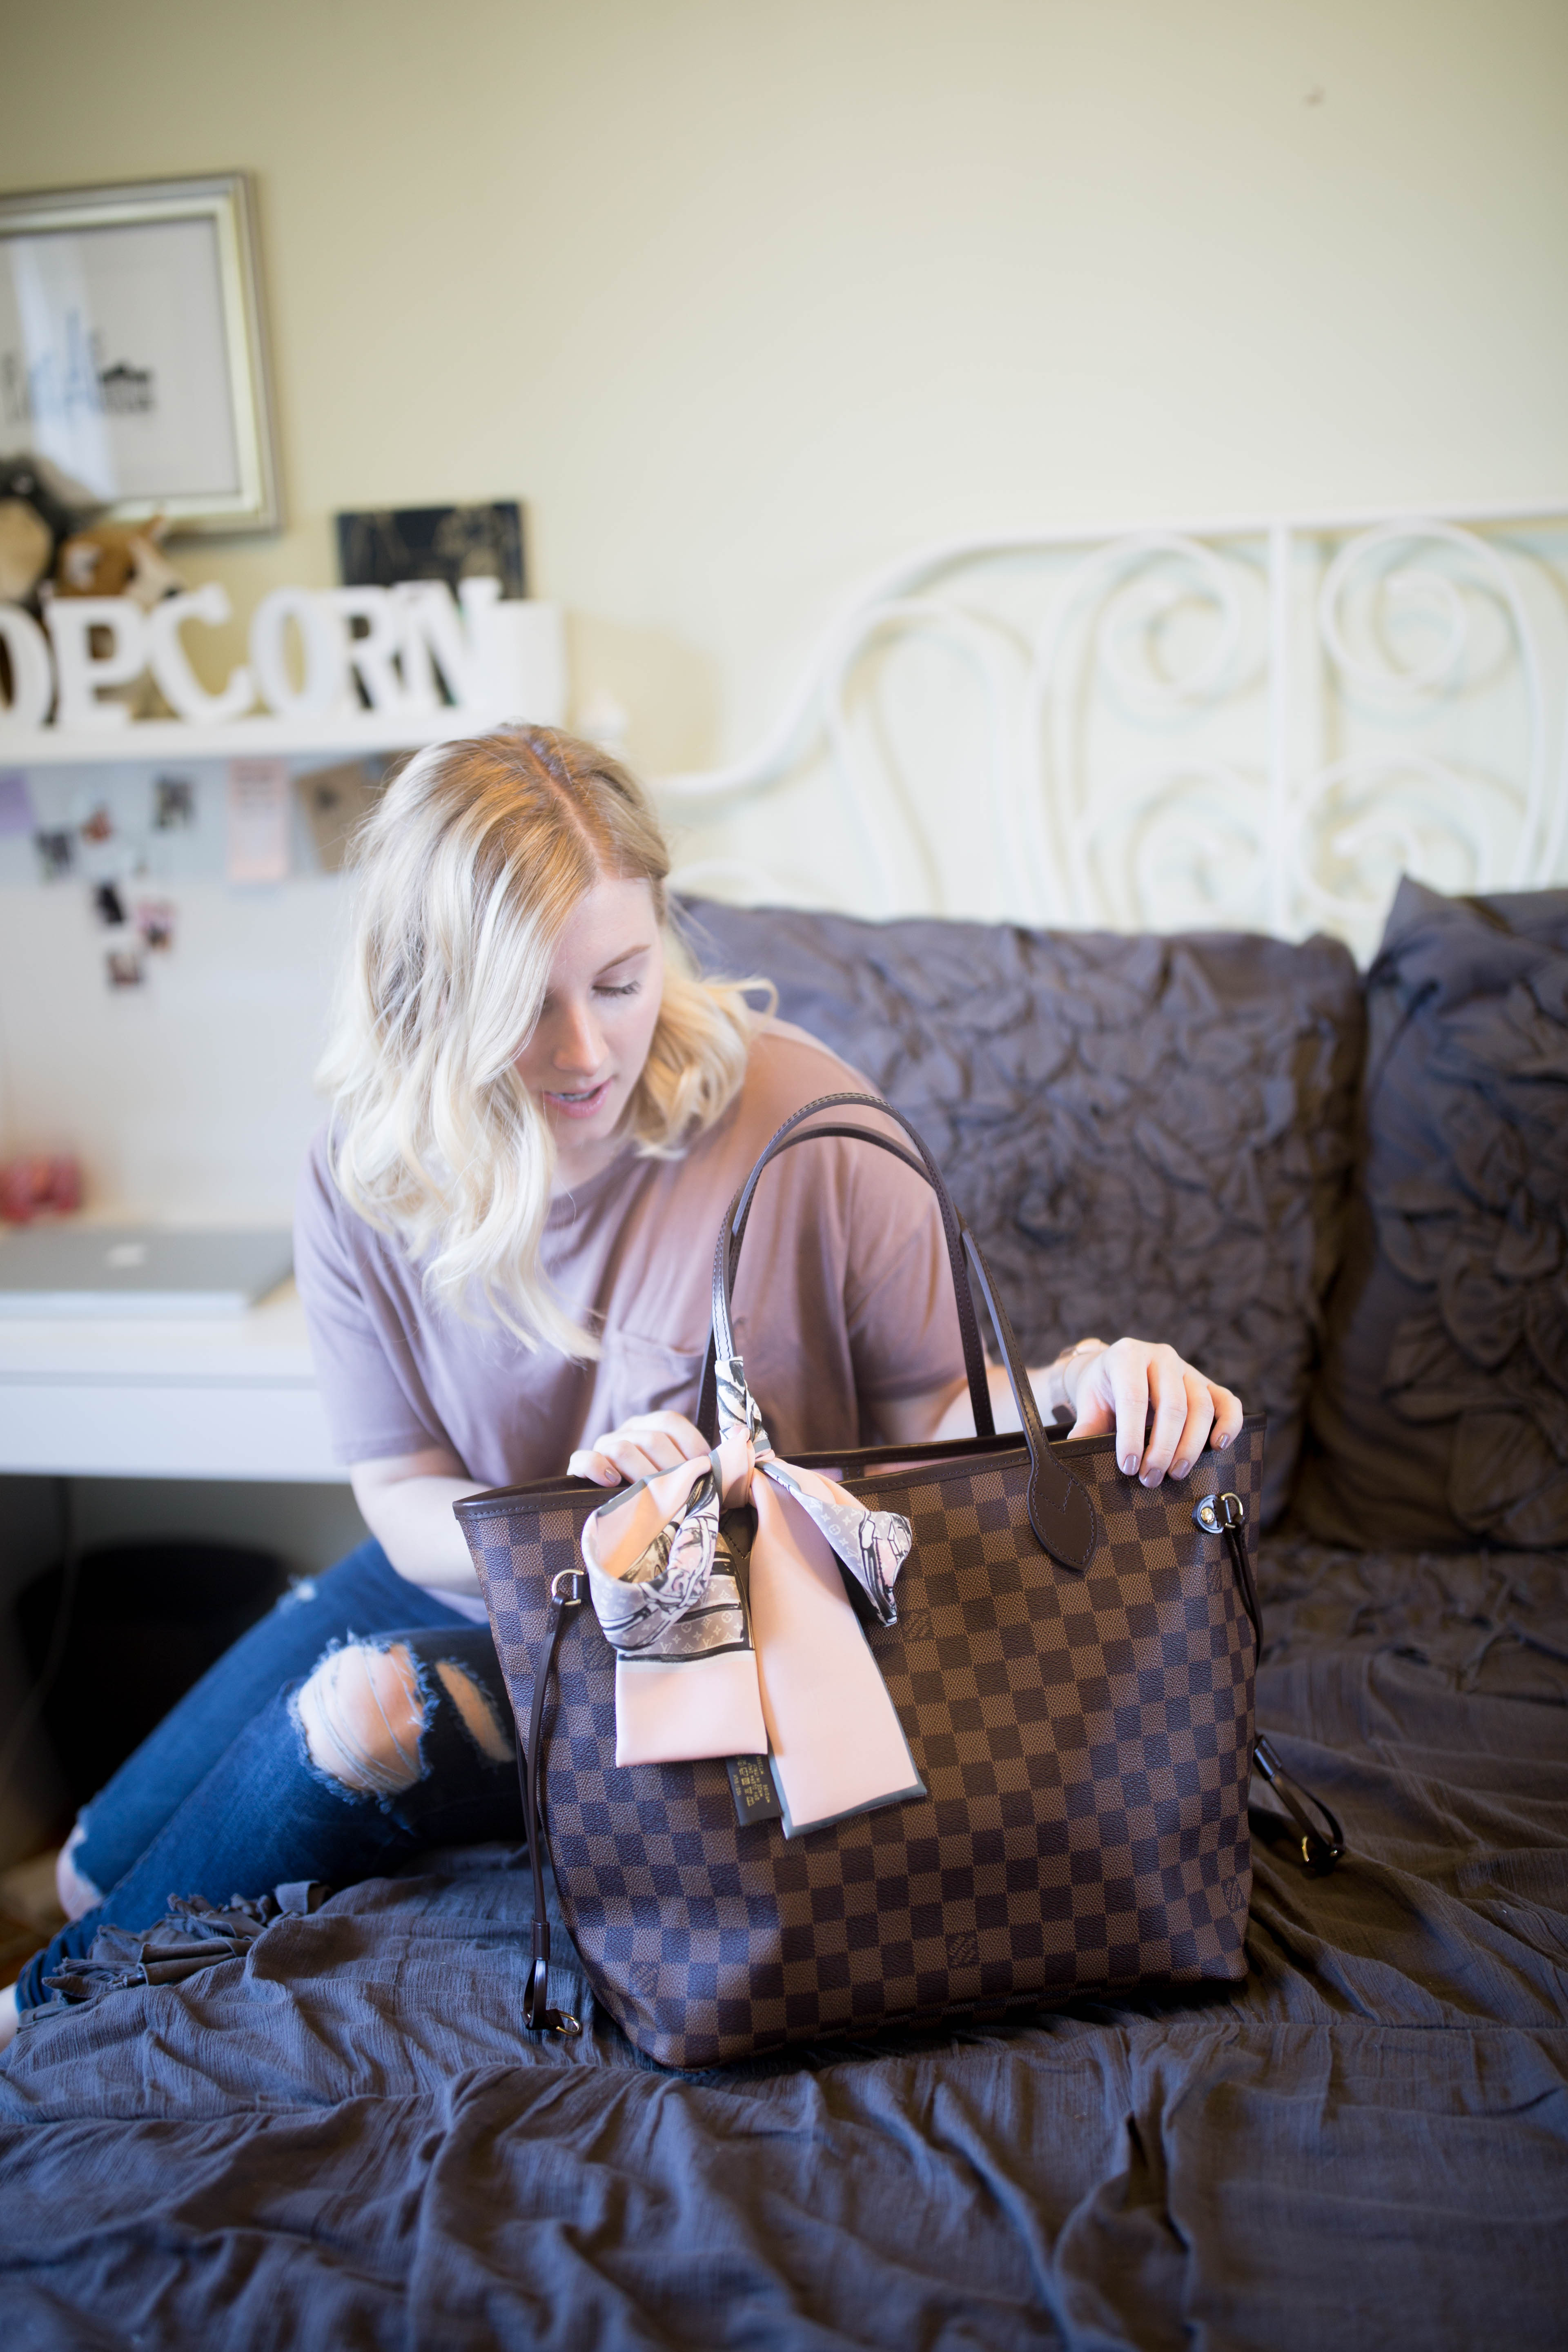 Check out these tips on how to choose your first designer handbag!